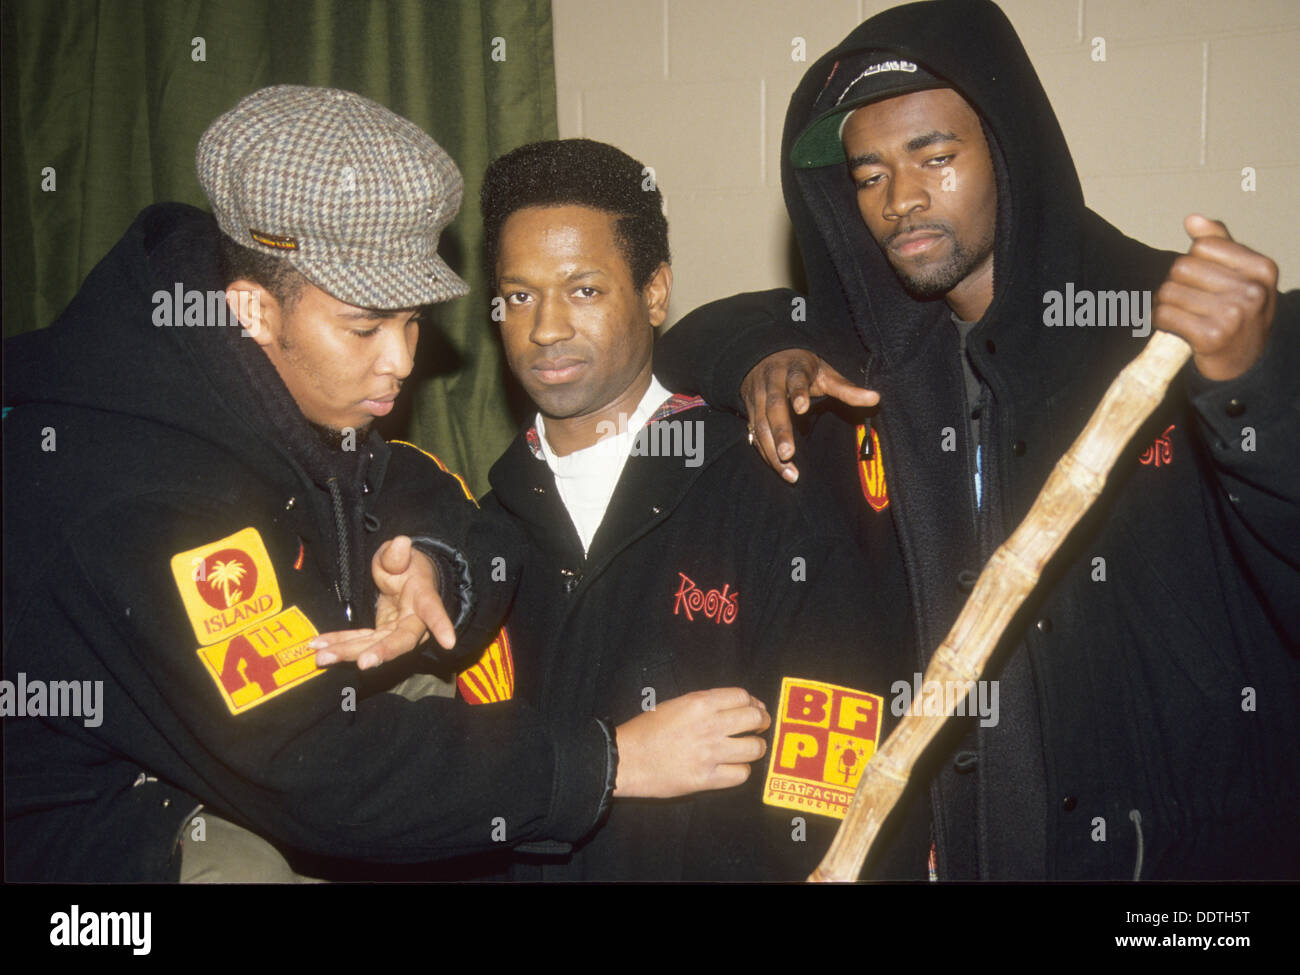 DREAM WARRIORS Canadian rap group in 1994 - Stock Image